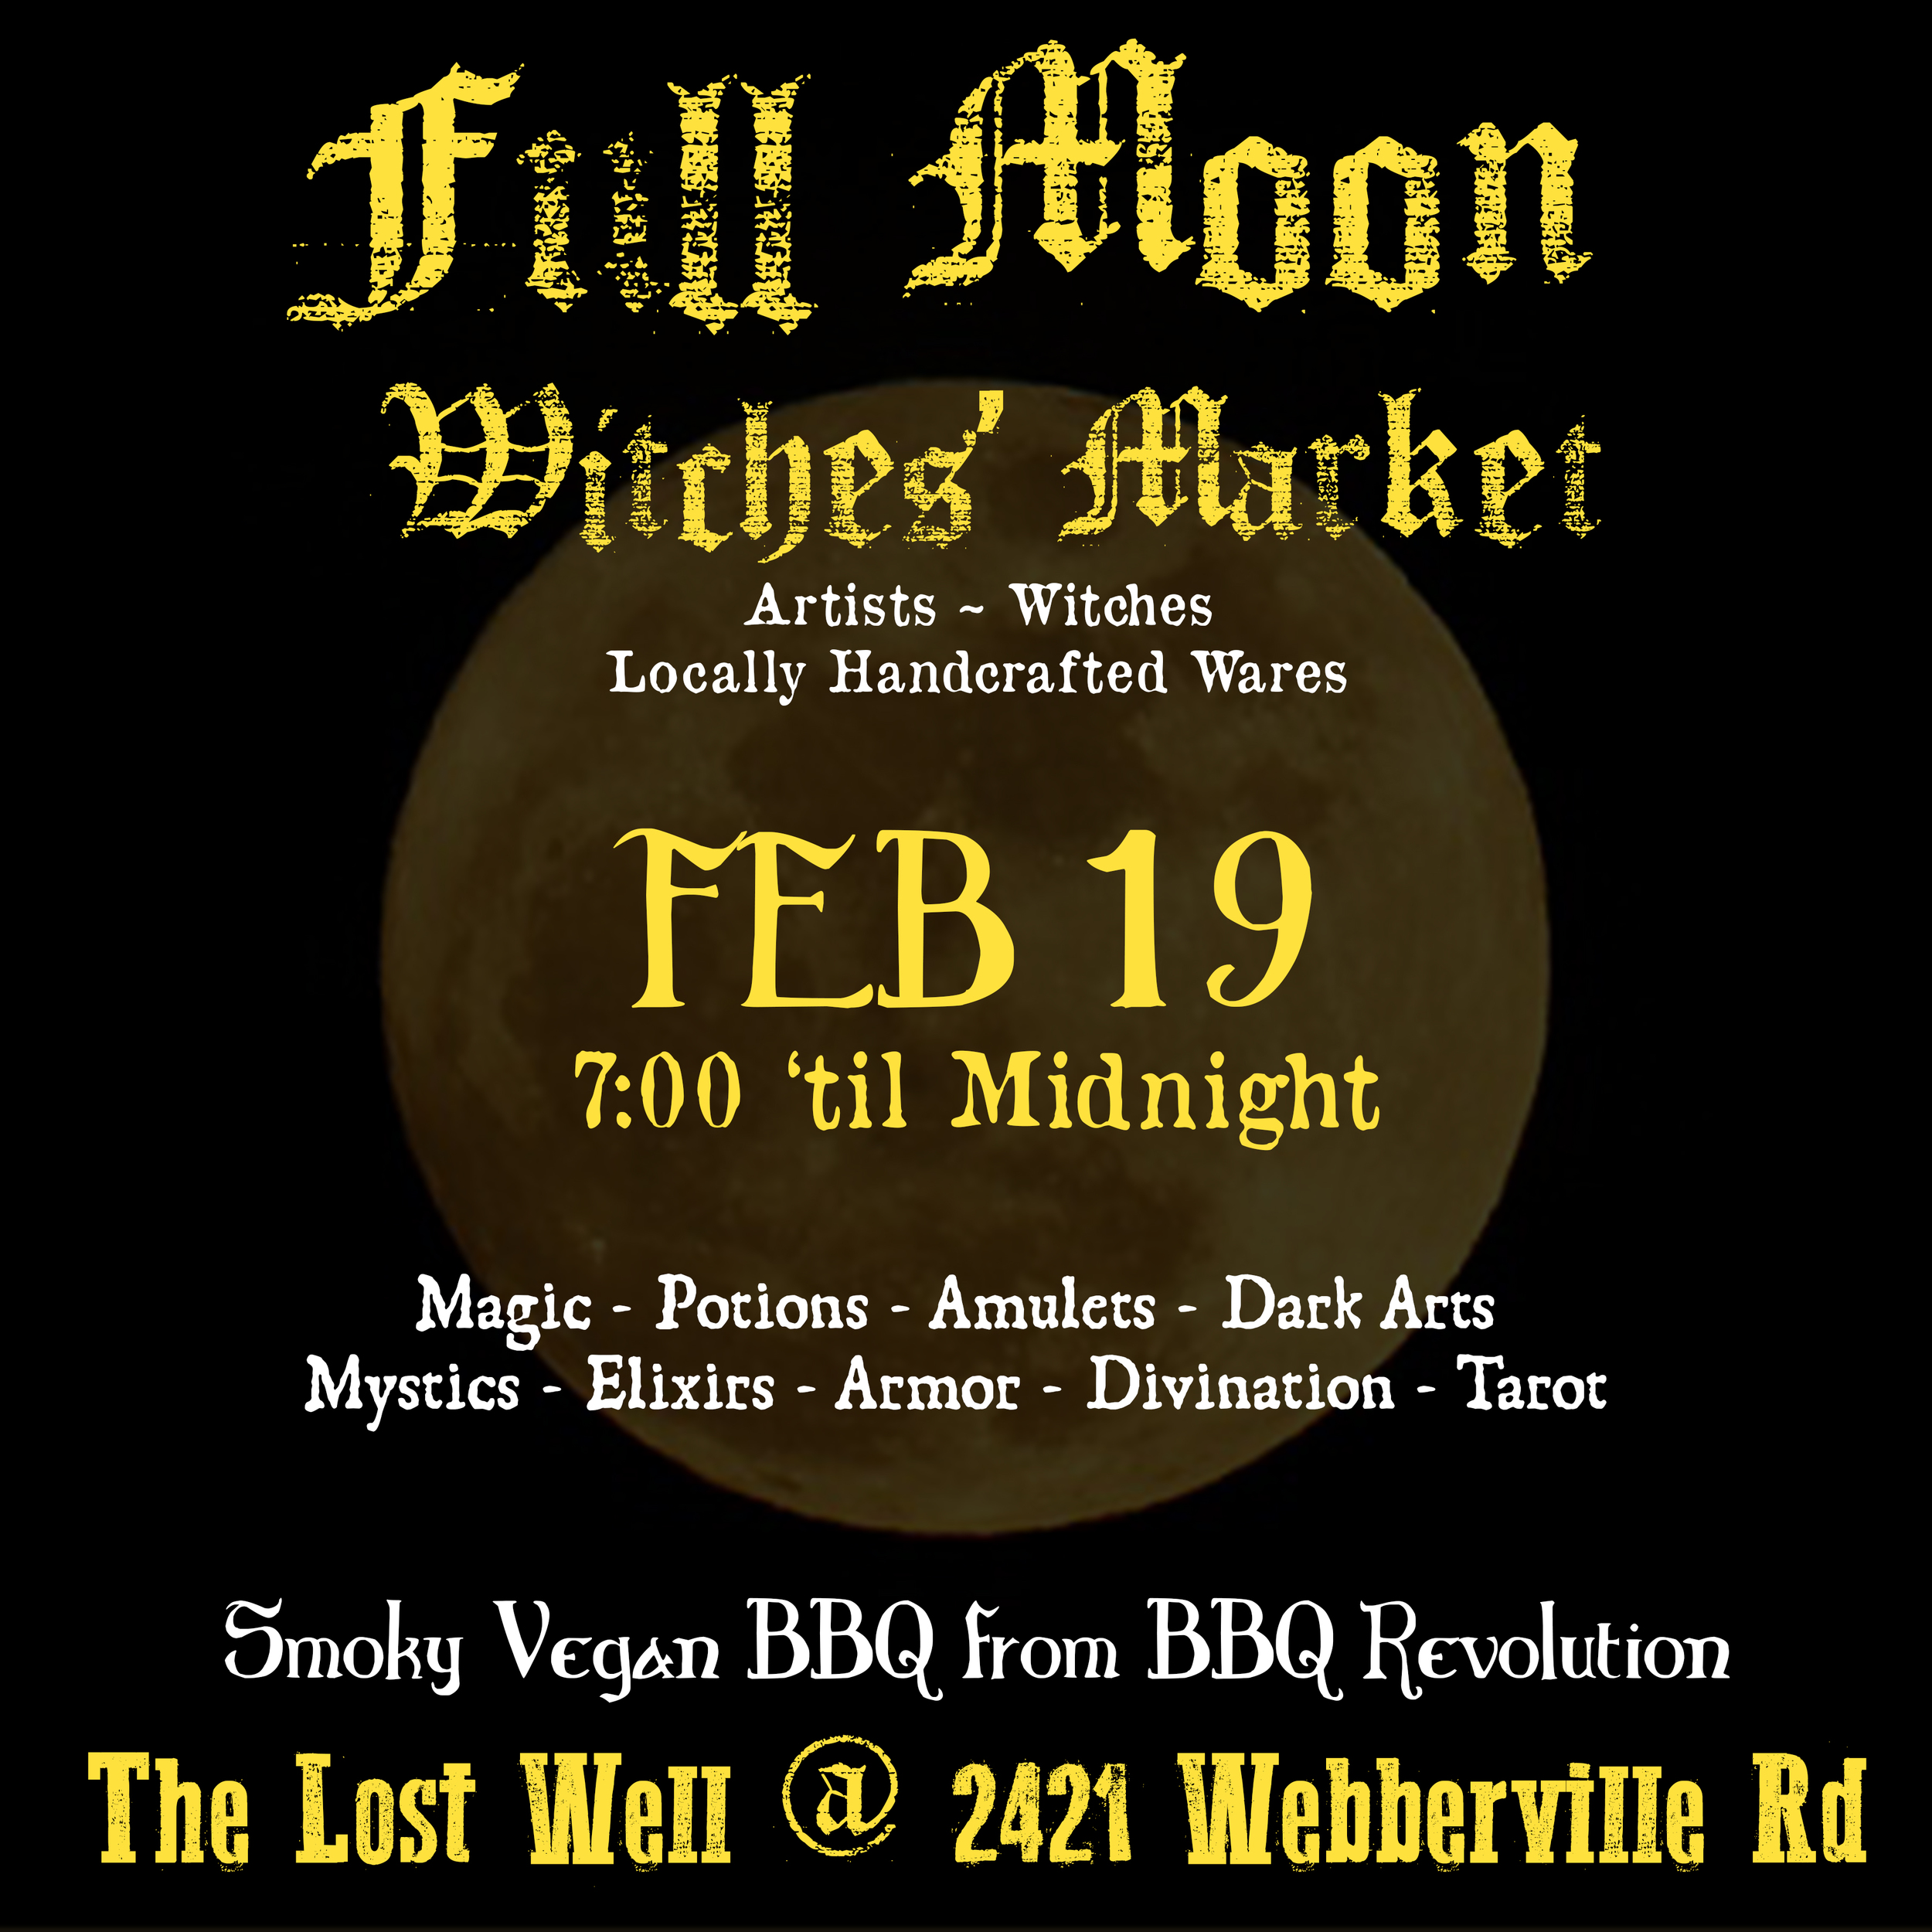 feb 19 full moon flyer